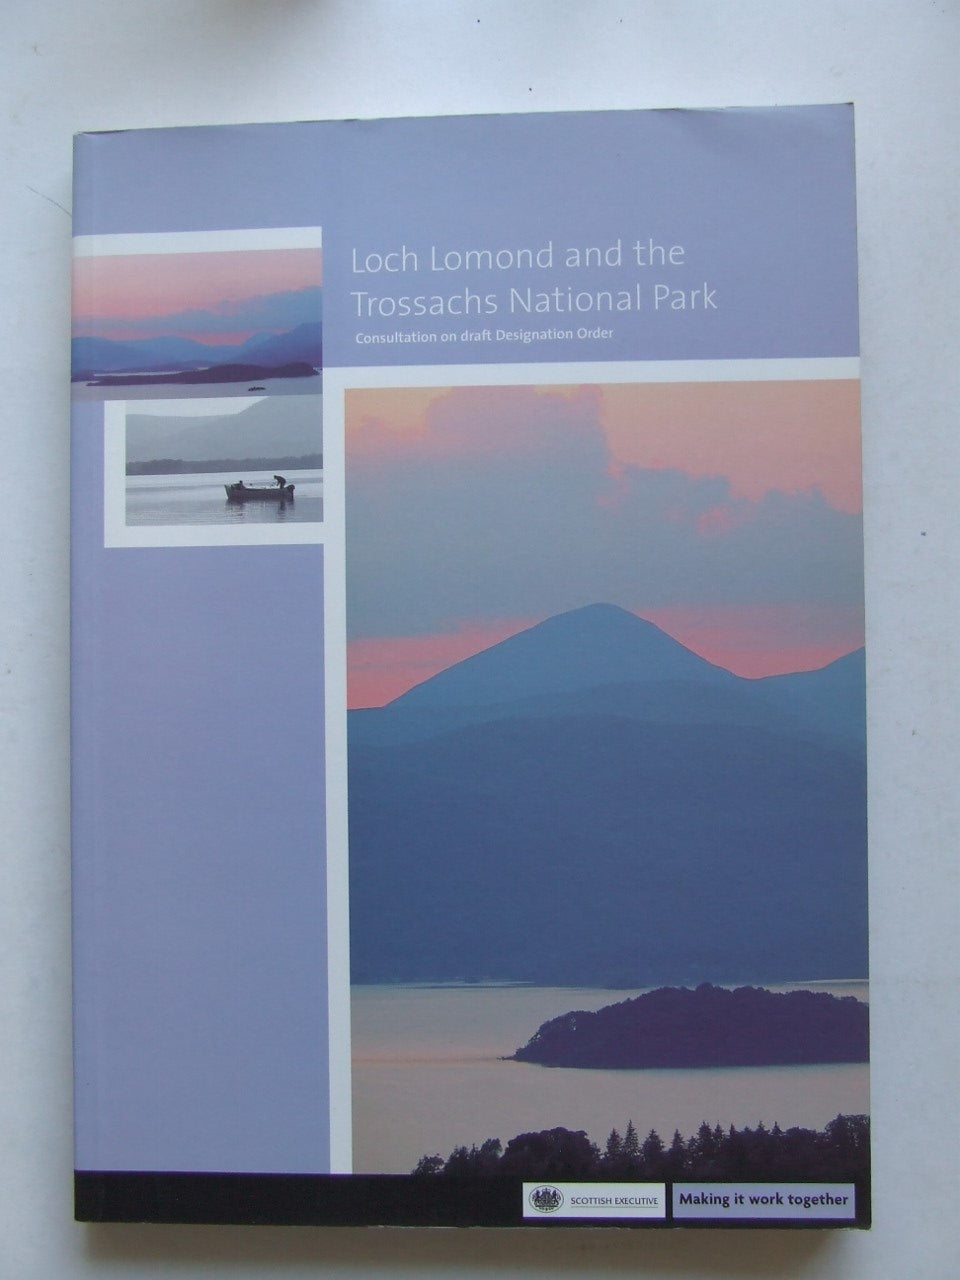 Loch Lomond and the Trossachs National Park, consultation on draft designation order